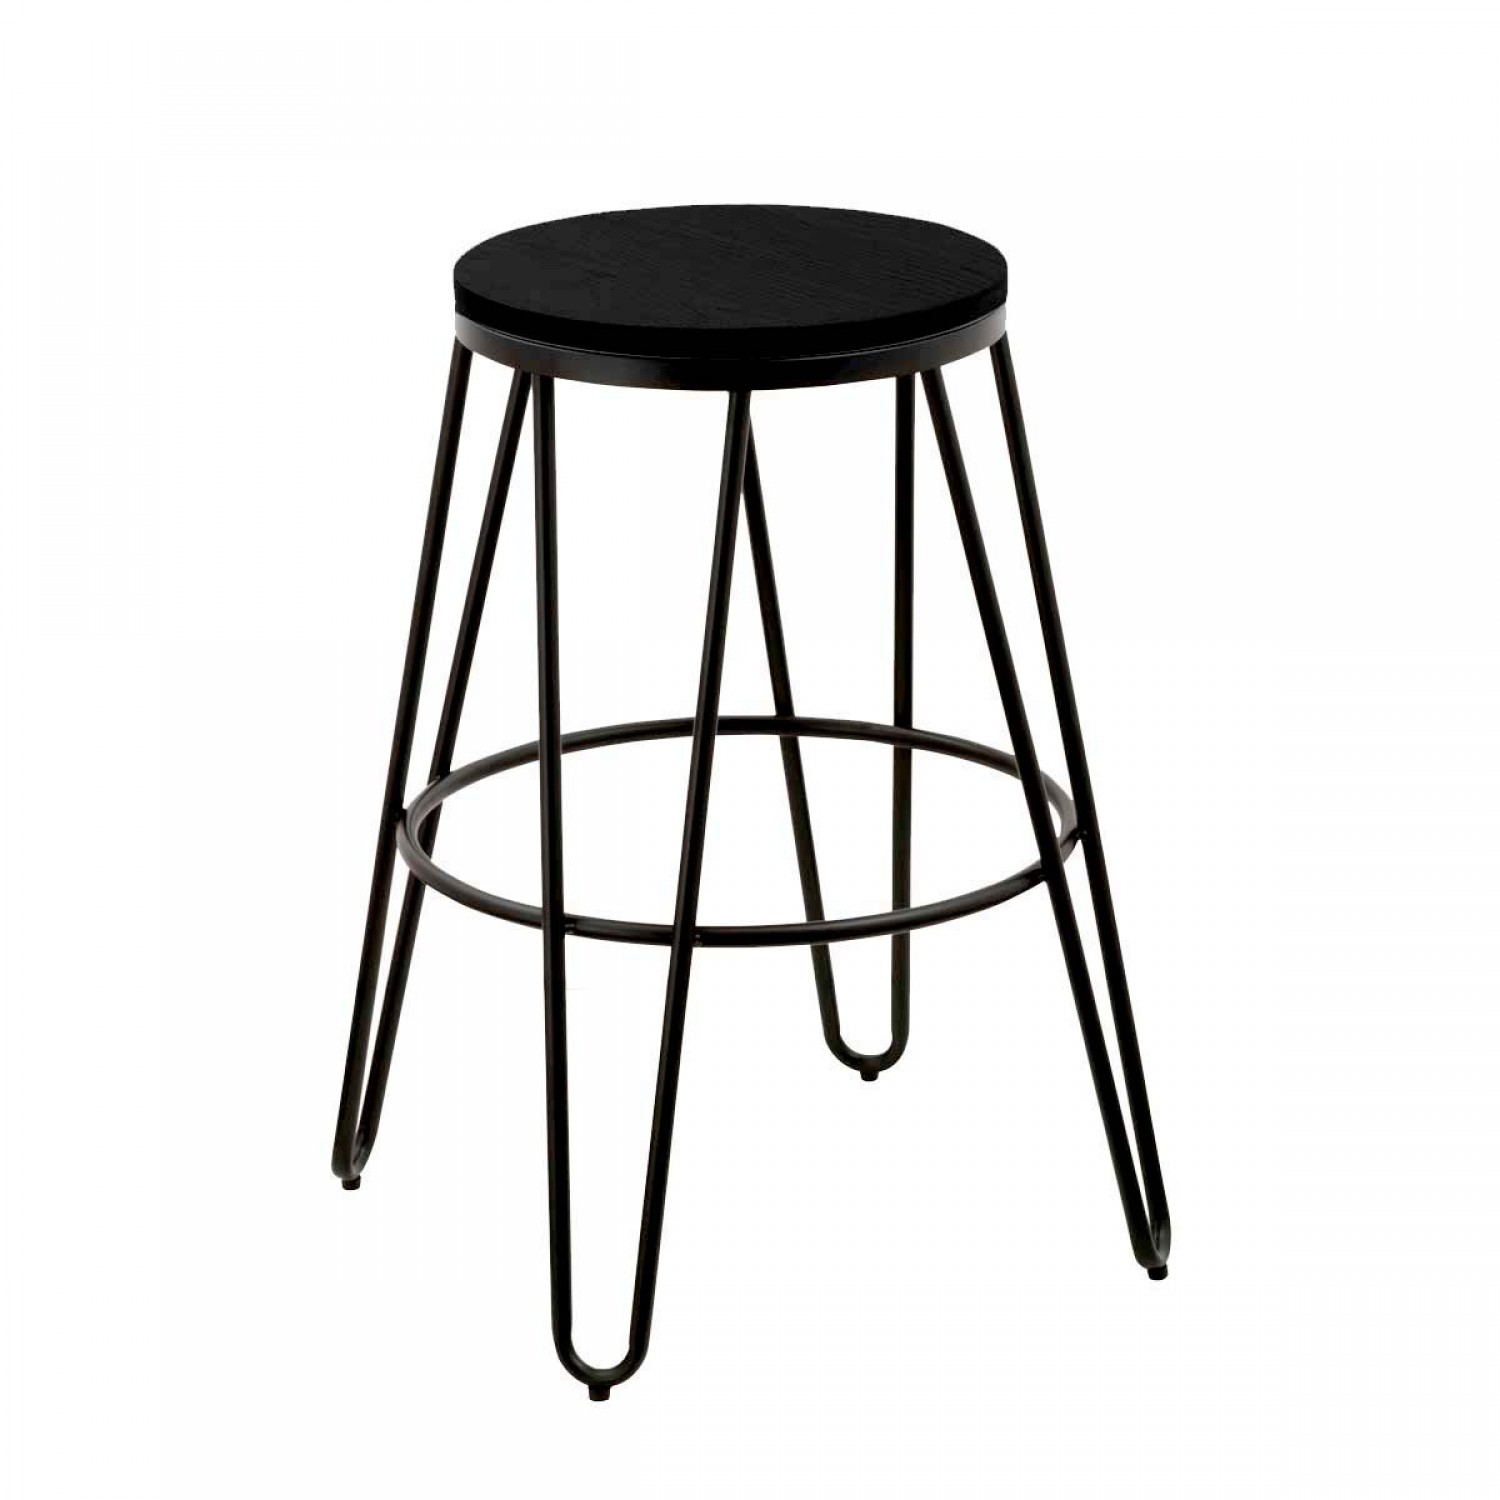 Tabouret De Bar Loft Noir Lot De 2 Koya Design